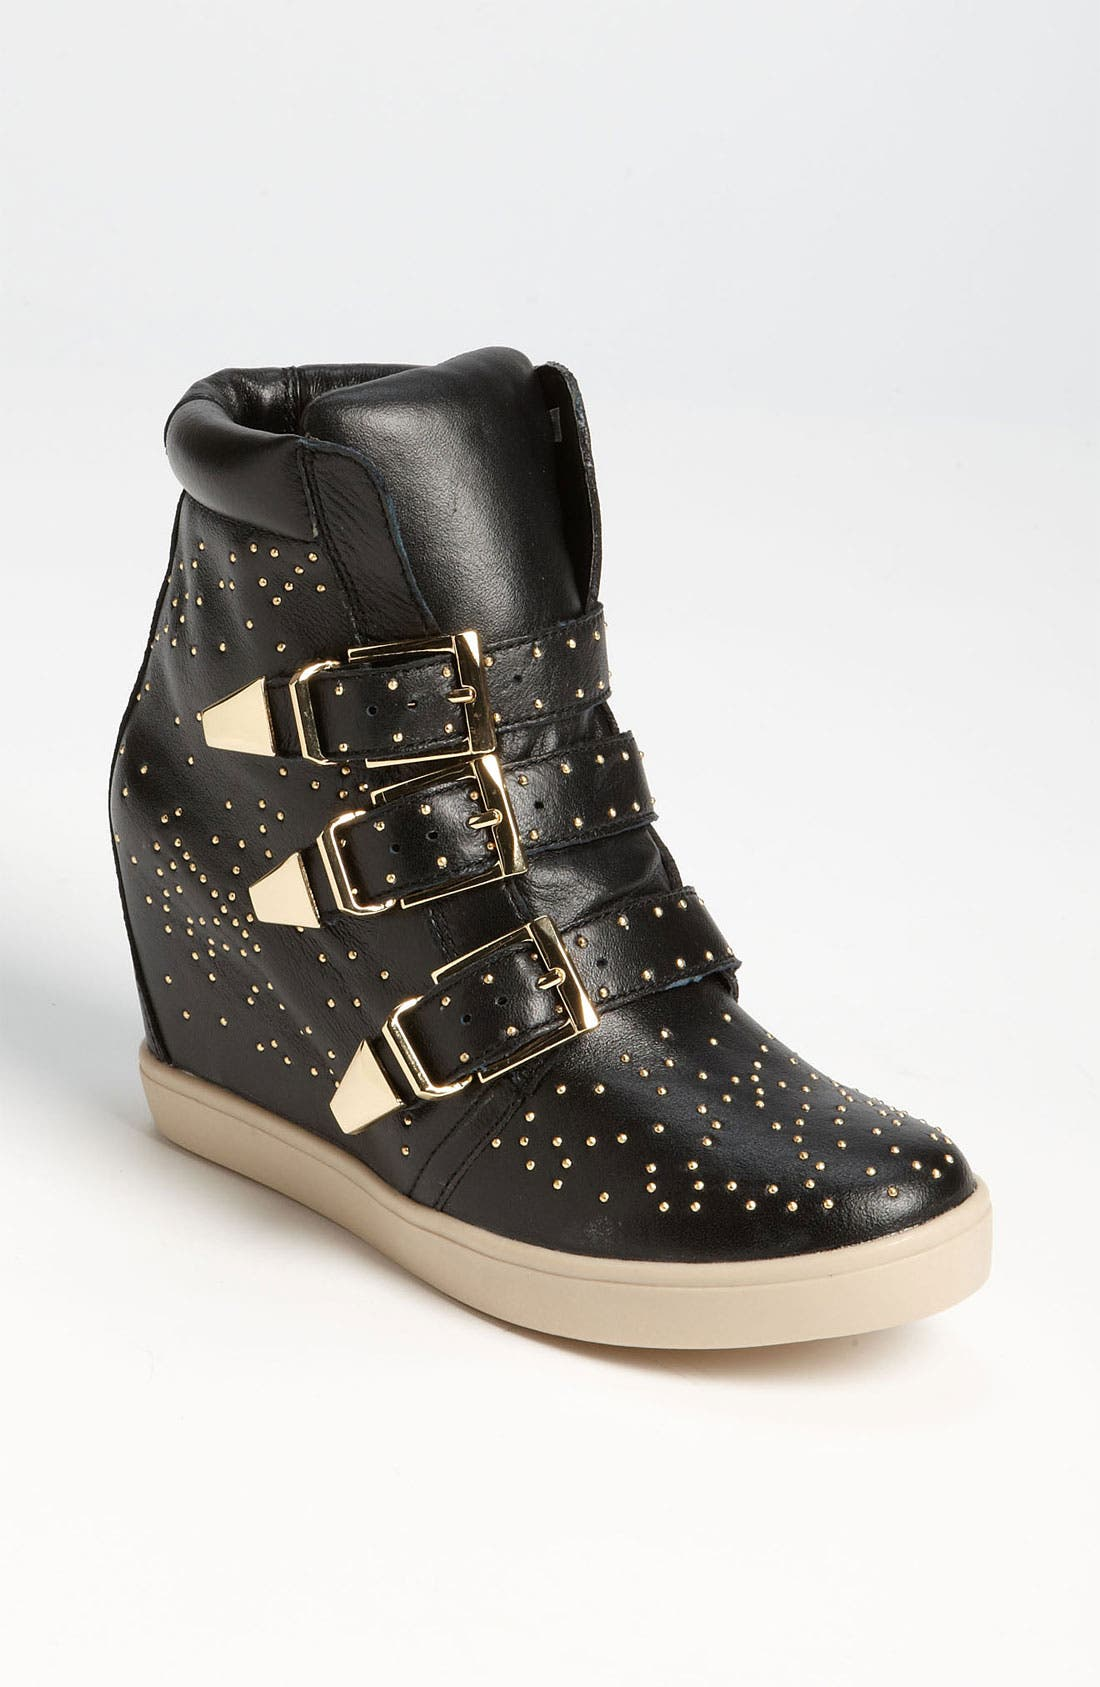 Alternate Image 1 Selected - Steven by Steve Madden 'Jeckle' Wedge Sneaker